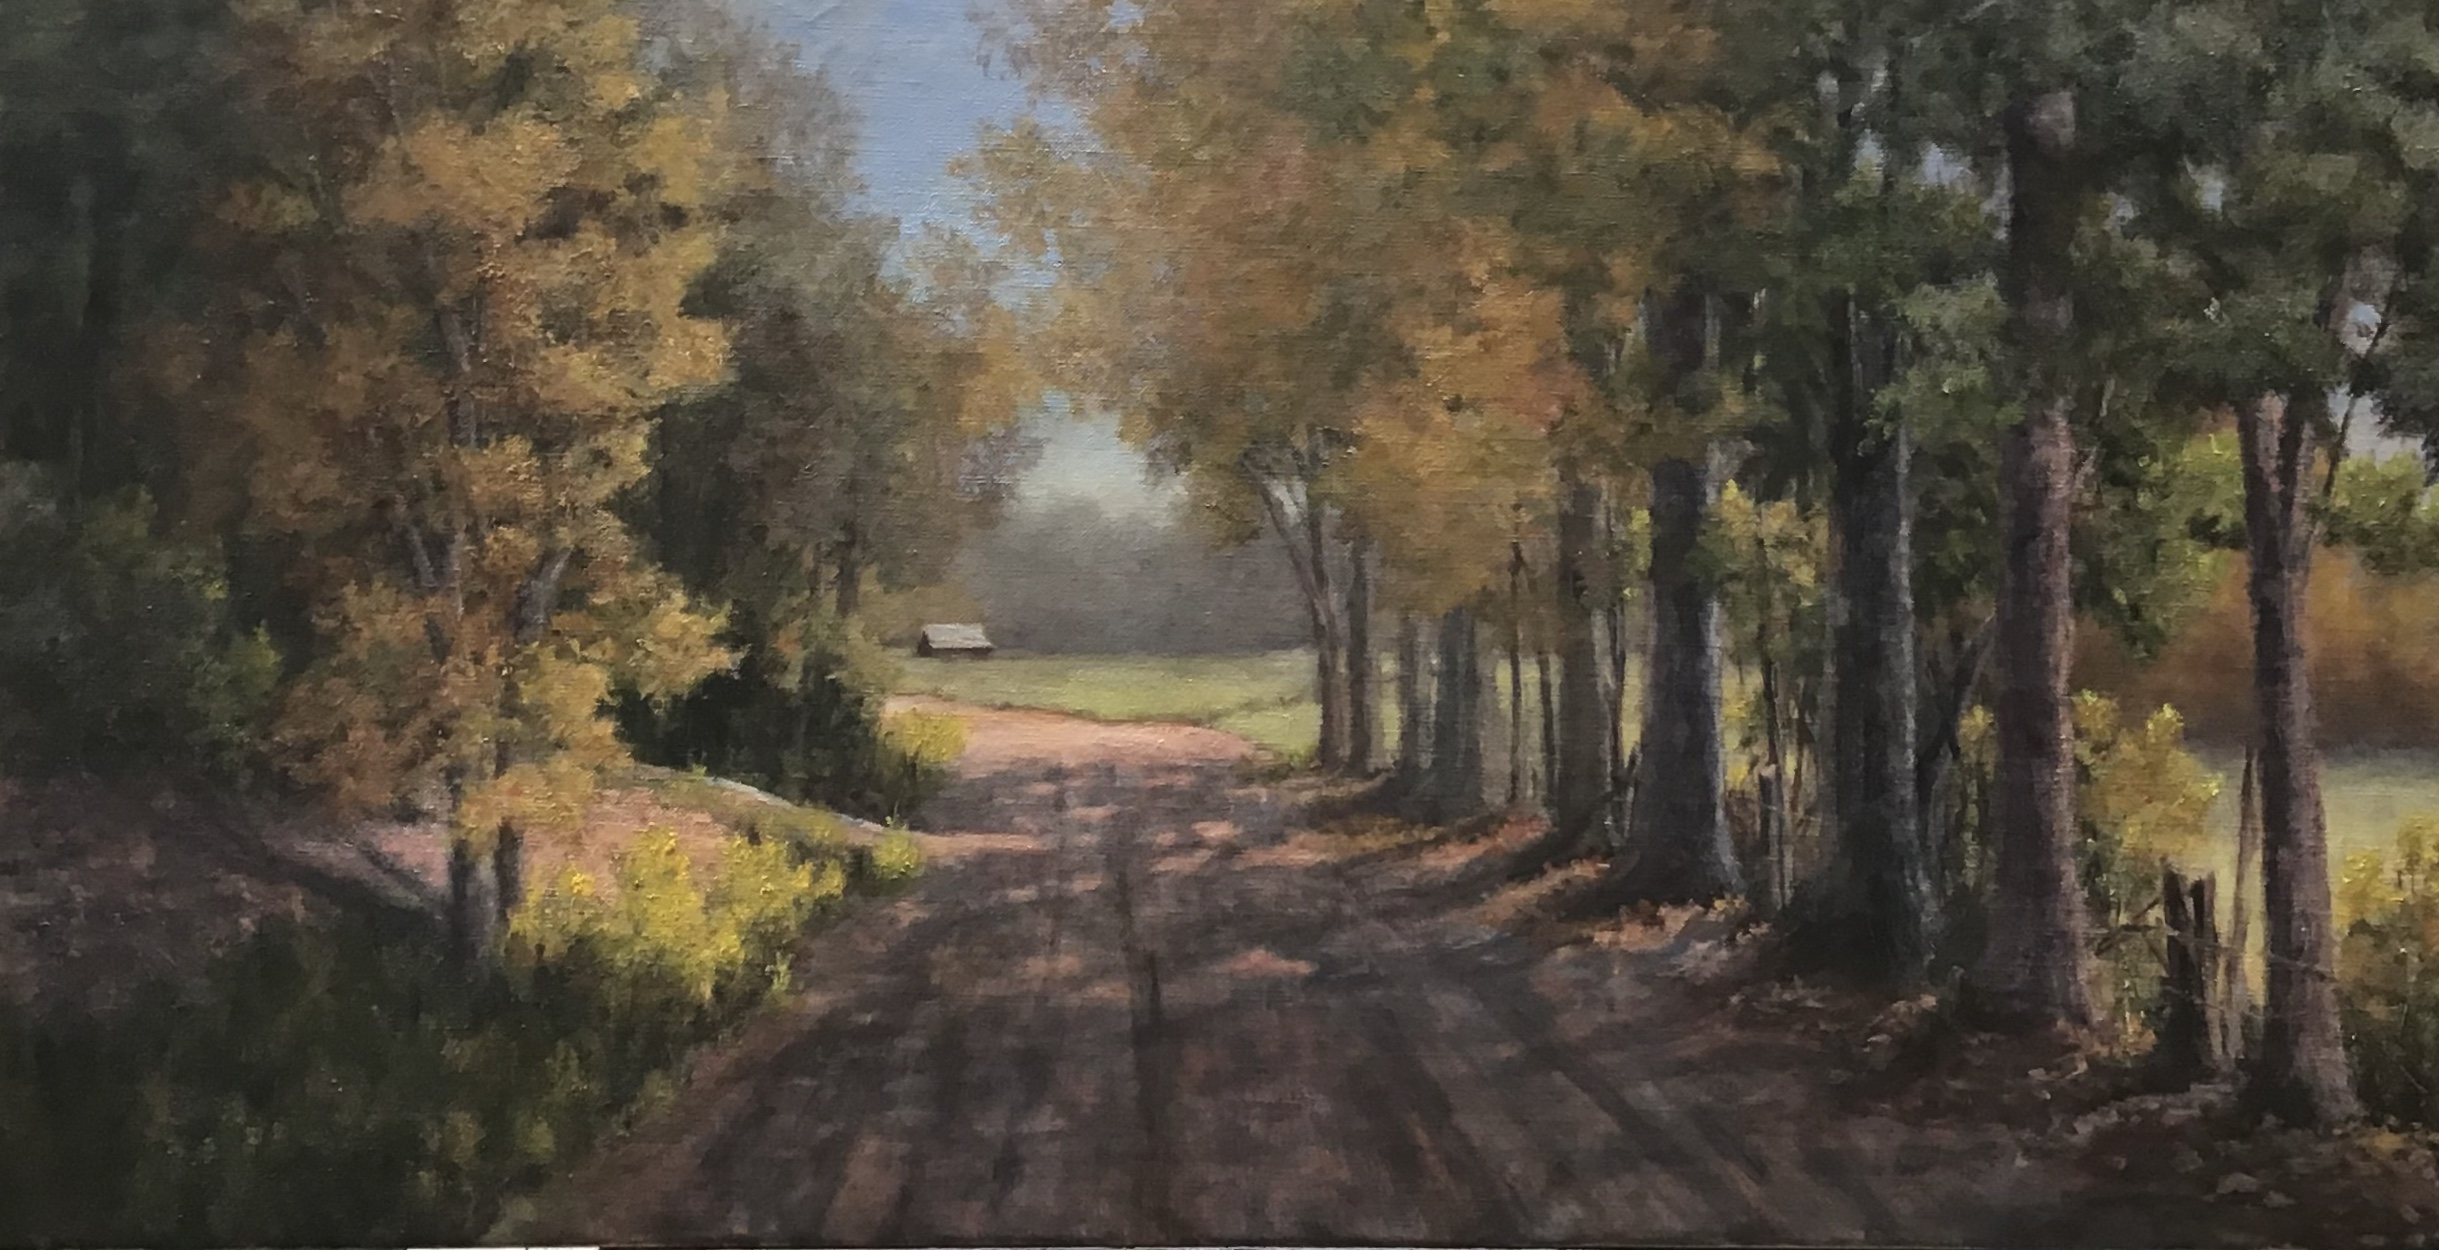 painting of trees along a dirt road